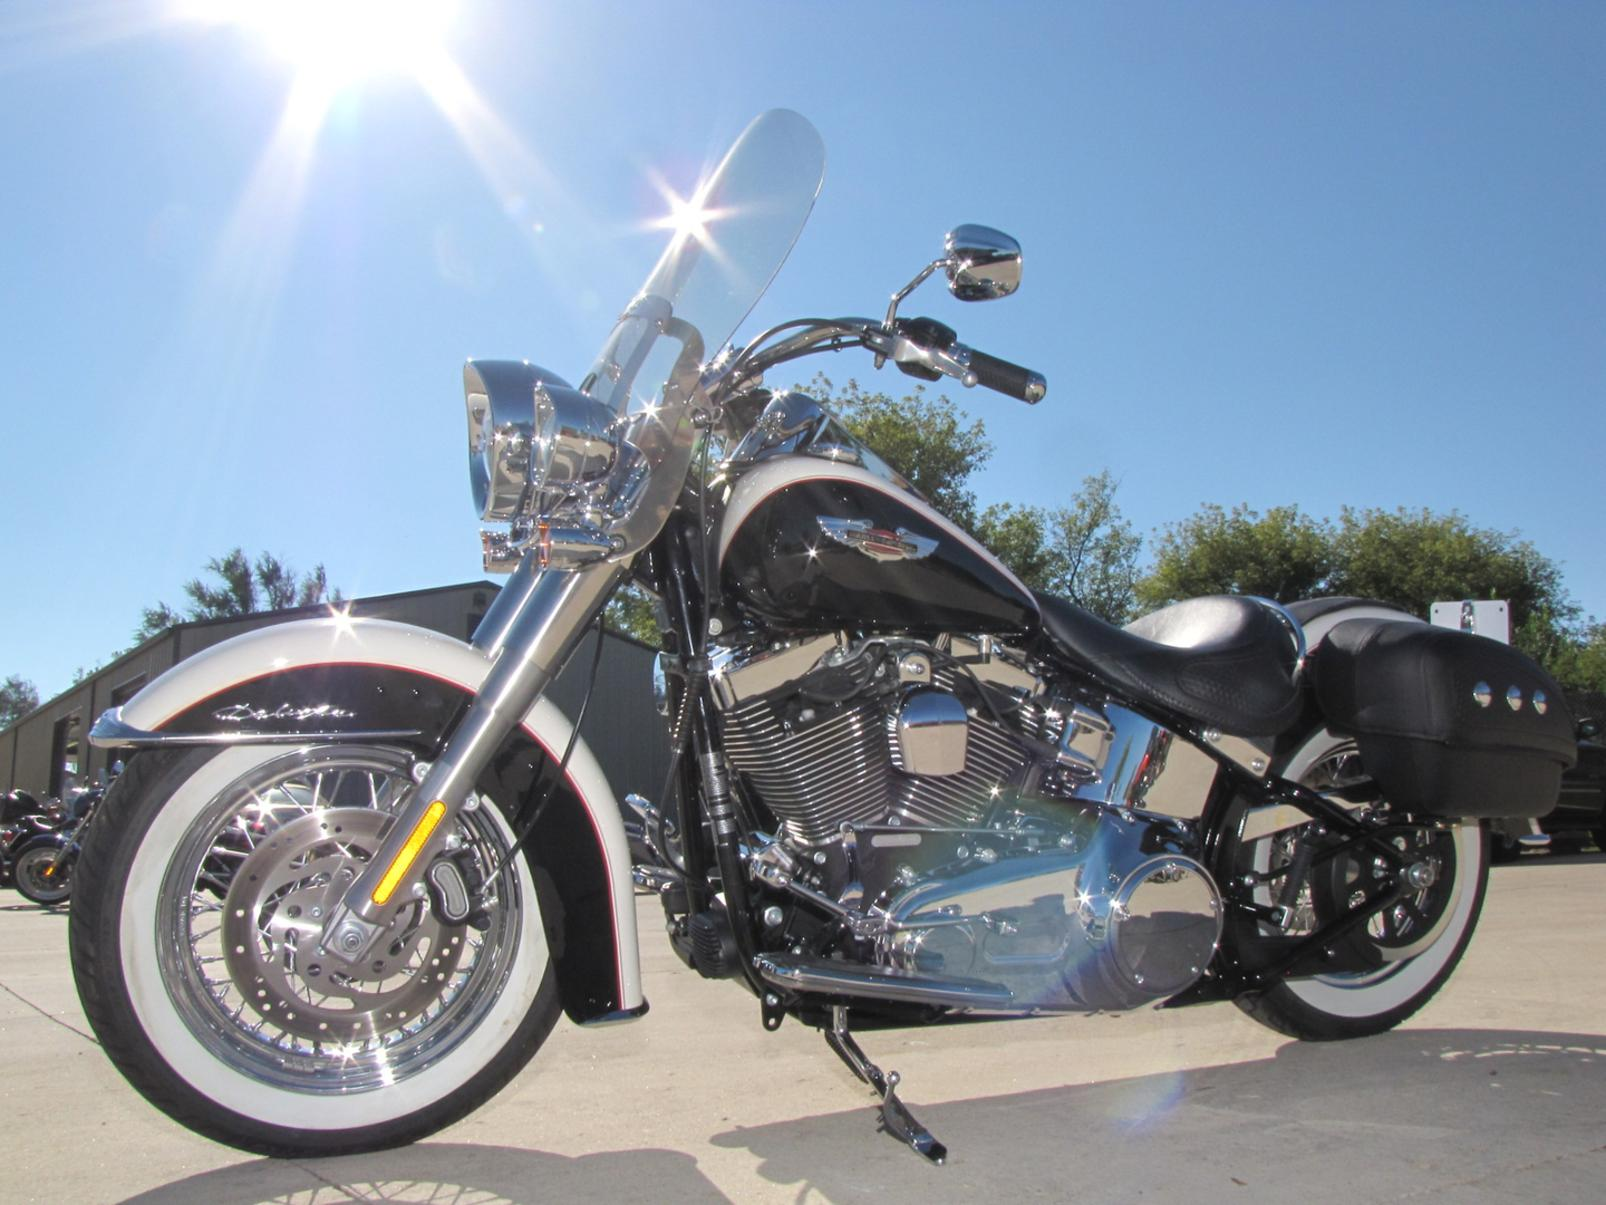 Used Harley-Davidson Motorcycles